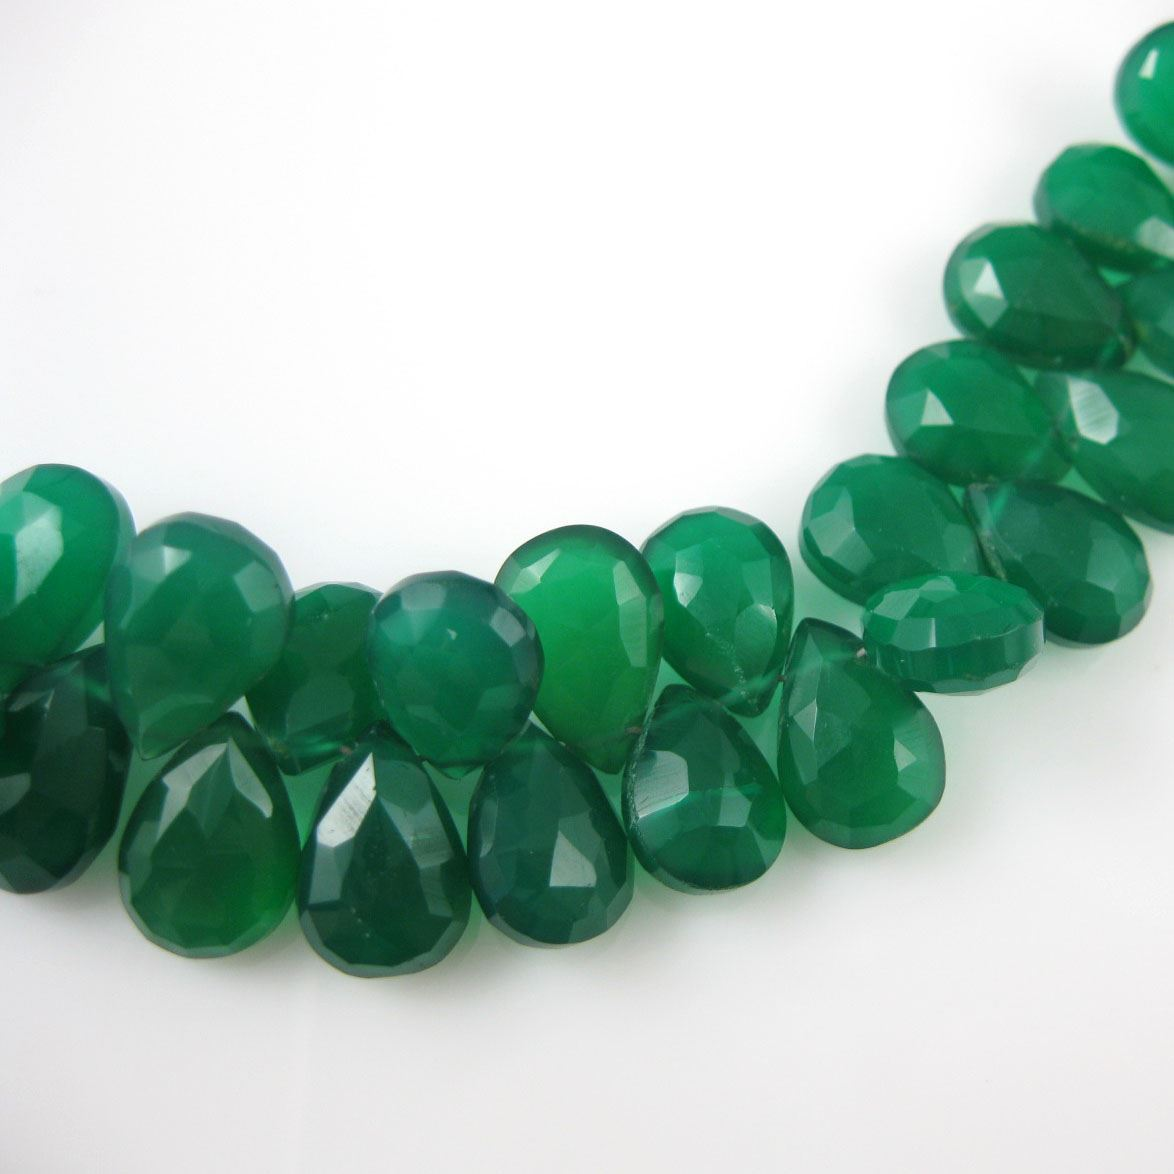 Semiprecious Gemstone Beads -100% Genuine Green Onyx Gemstone Bead Faceted Pear Shape - Grade B - 10mm -5 pieces